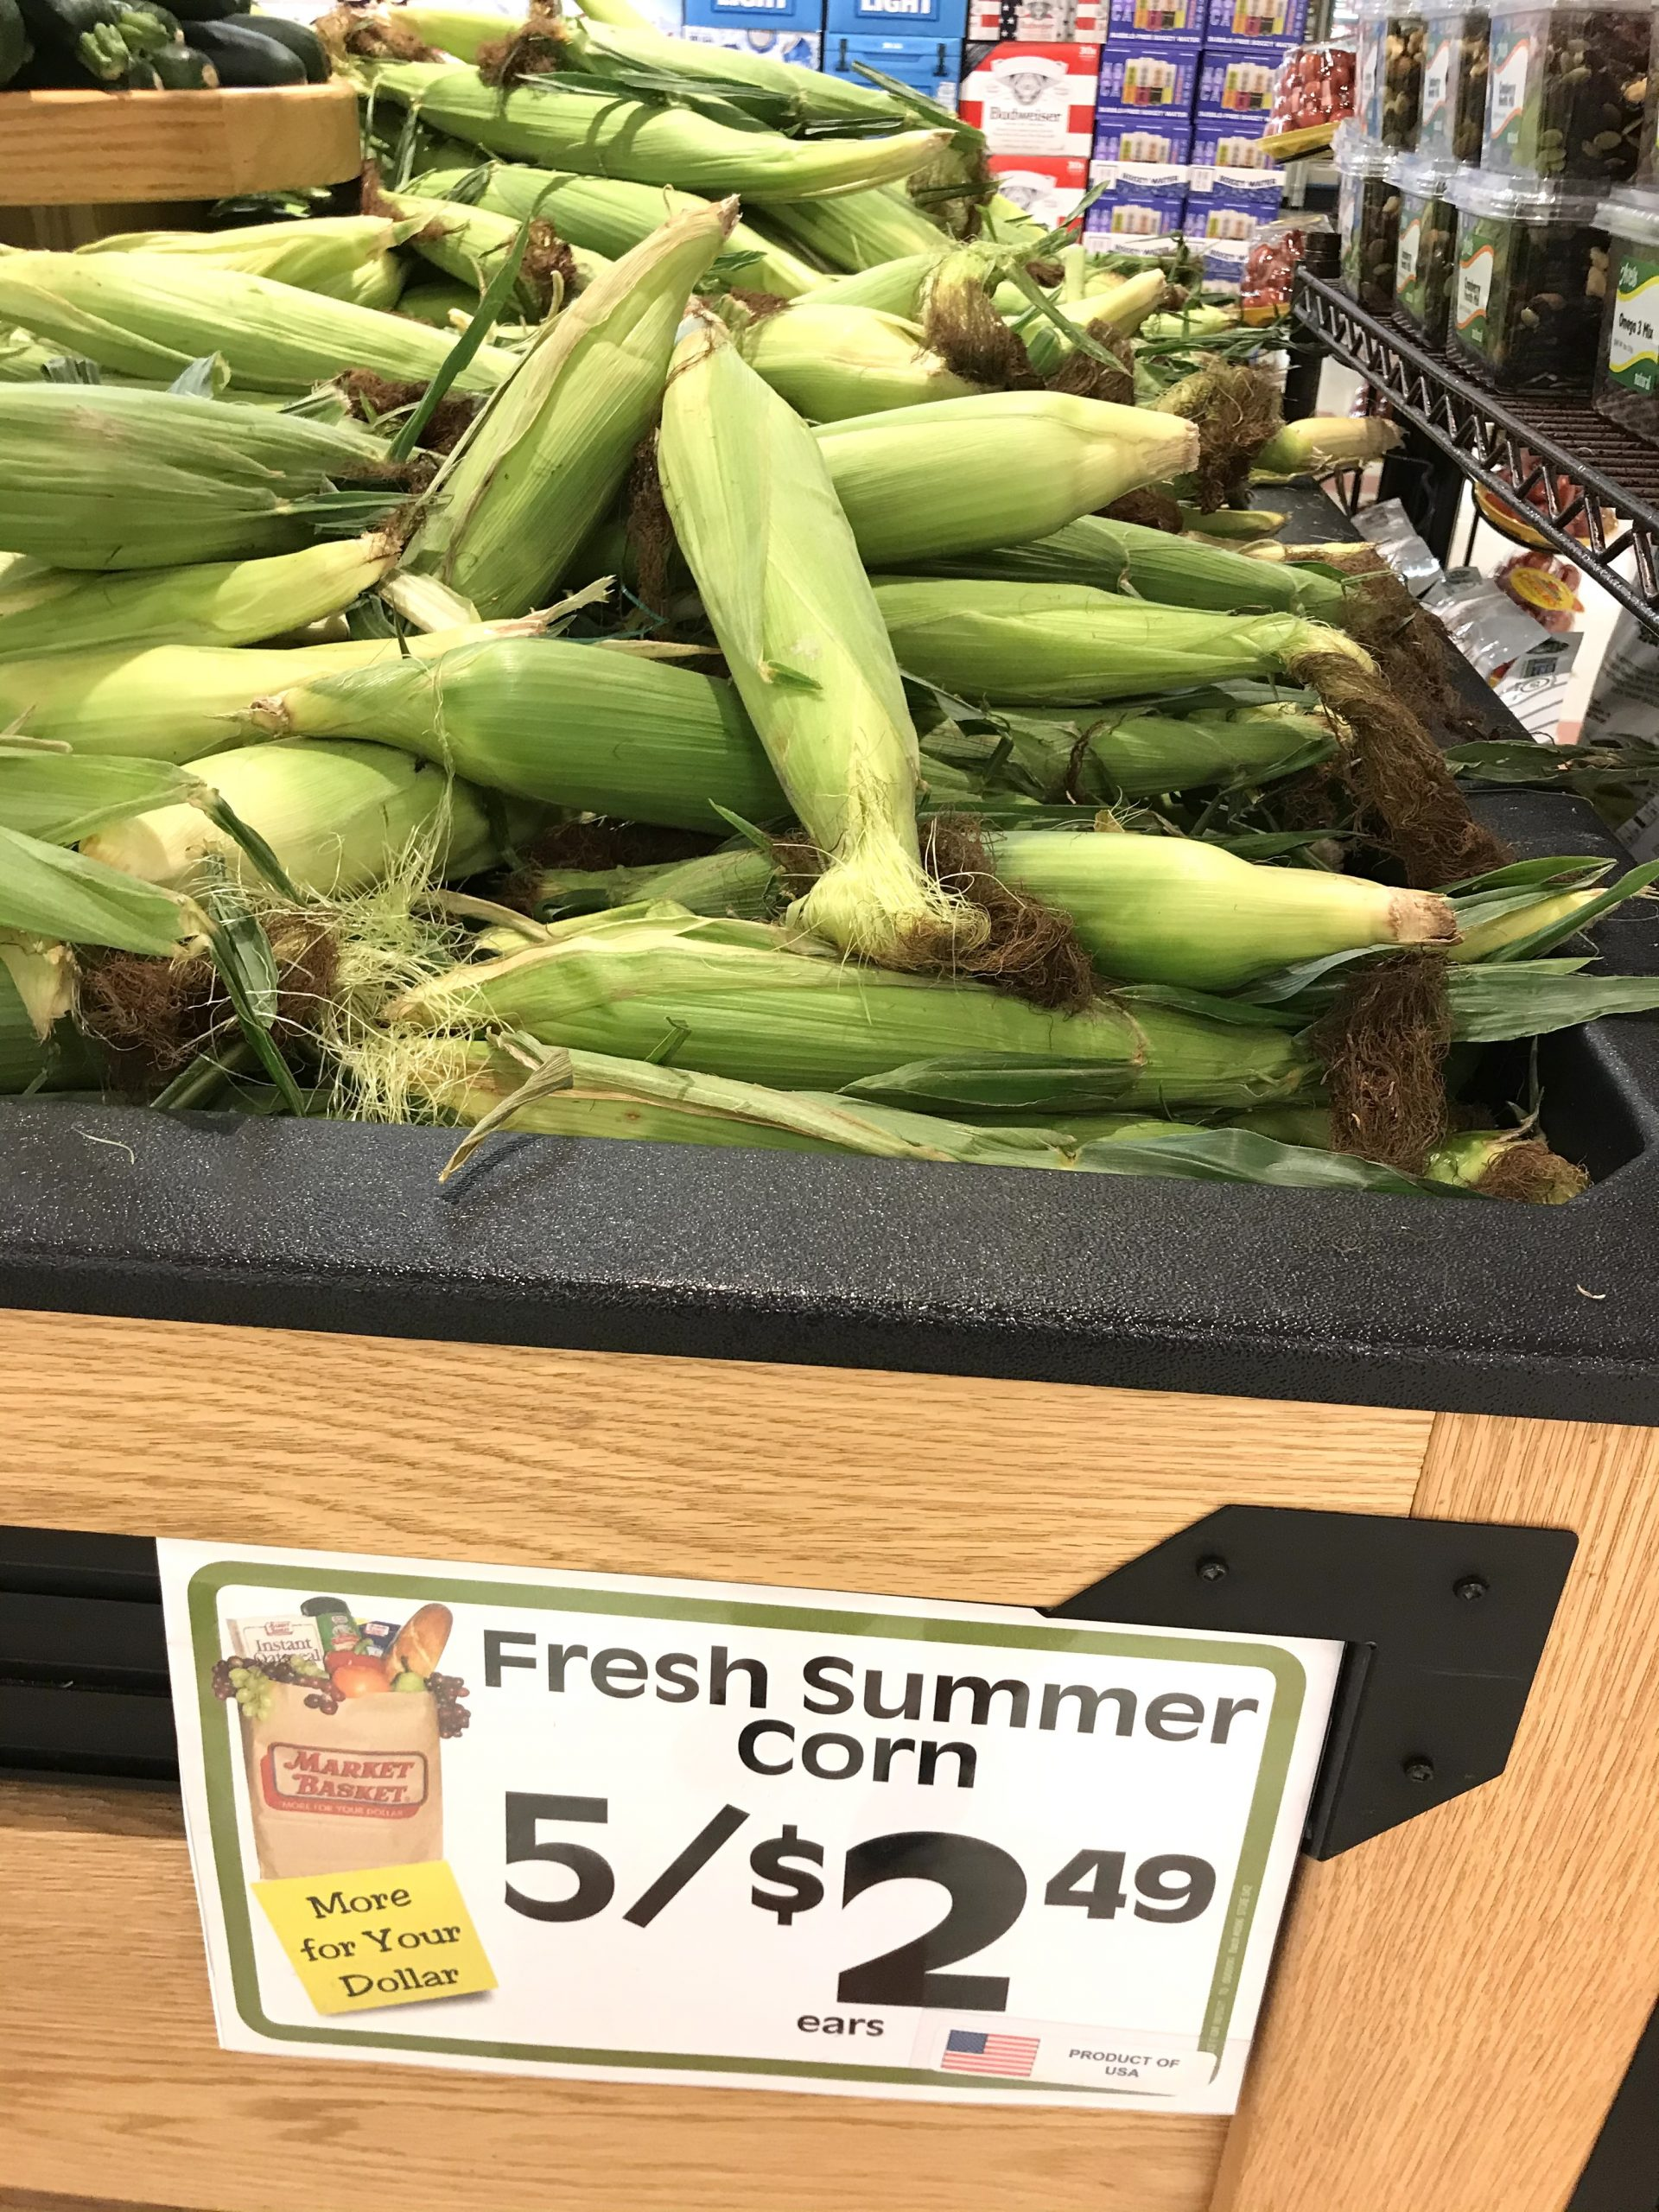 How Much Are You Paying For Corn This Season?